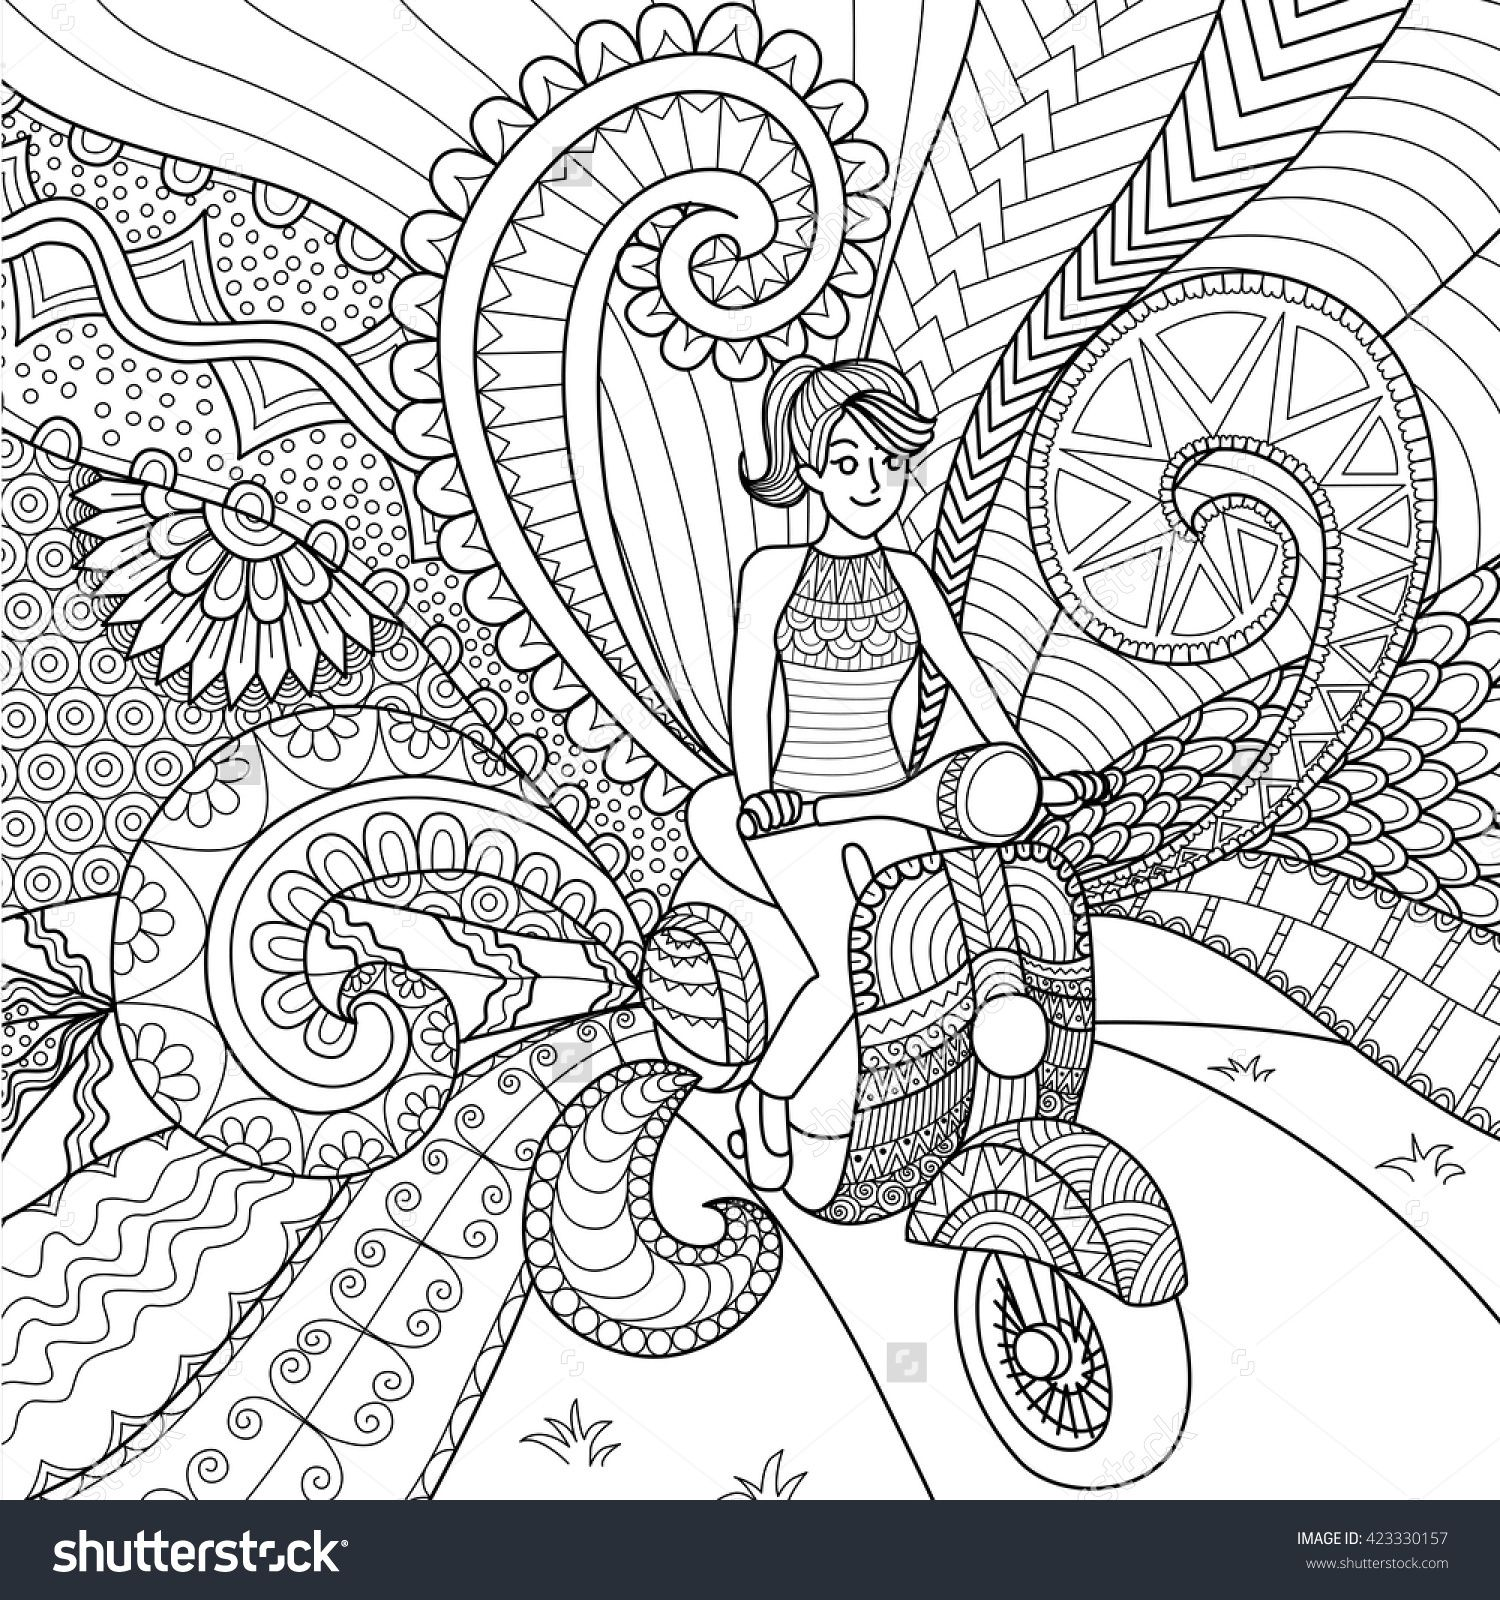 Girl Driving Scooter Clean Lines Doodle Design For Coloring Book Adult Stok